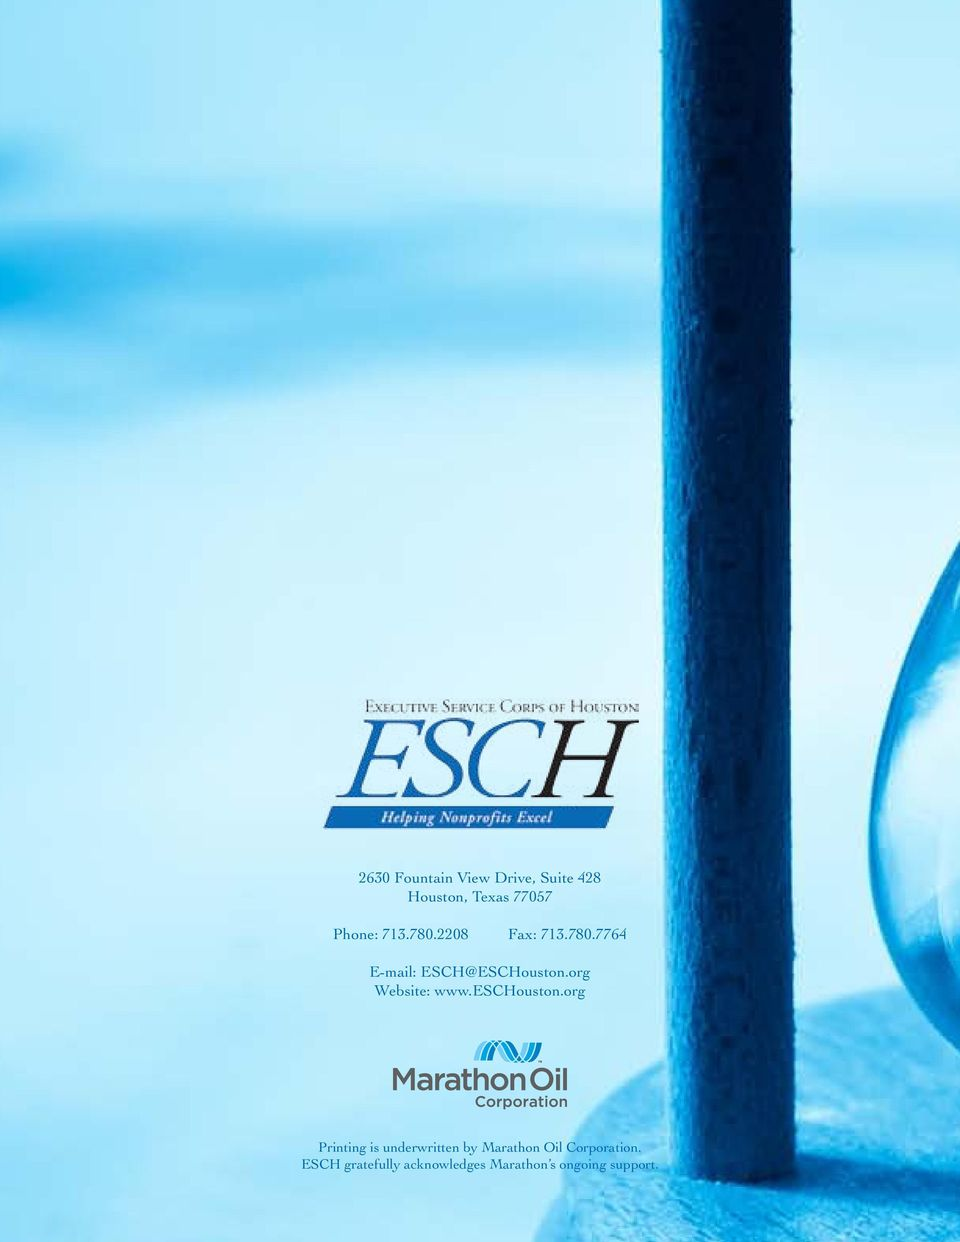 org Website: www.eschouston.